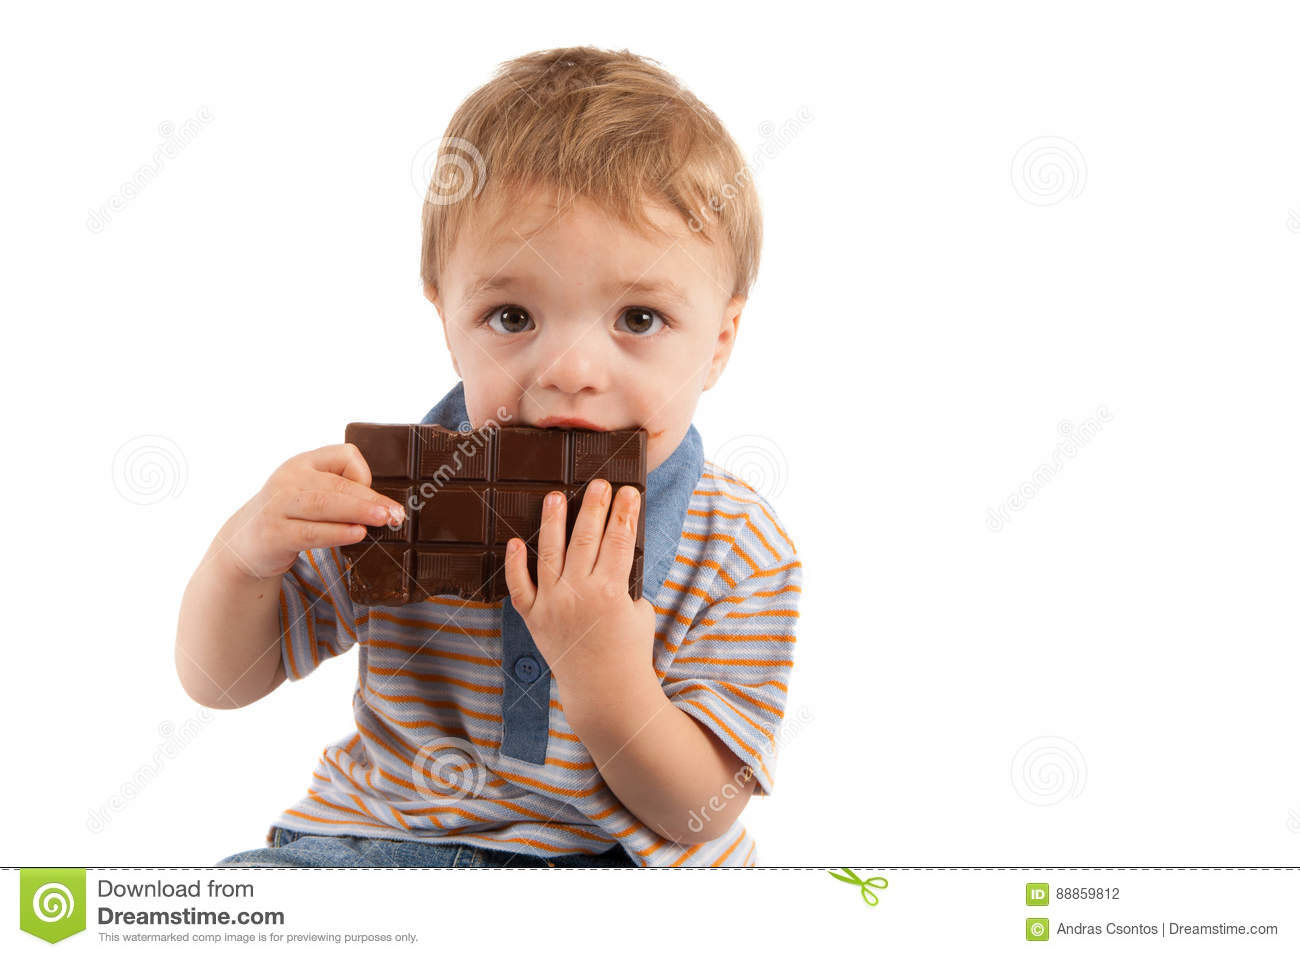 Cute Toddler Eating His Big Chocolate Bar Stock Photo - Image ...